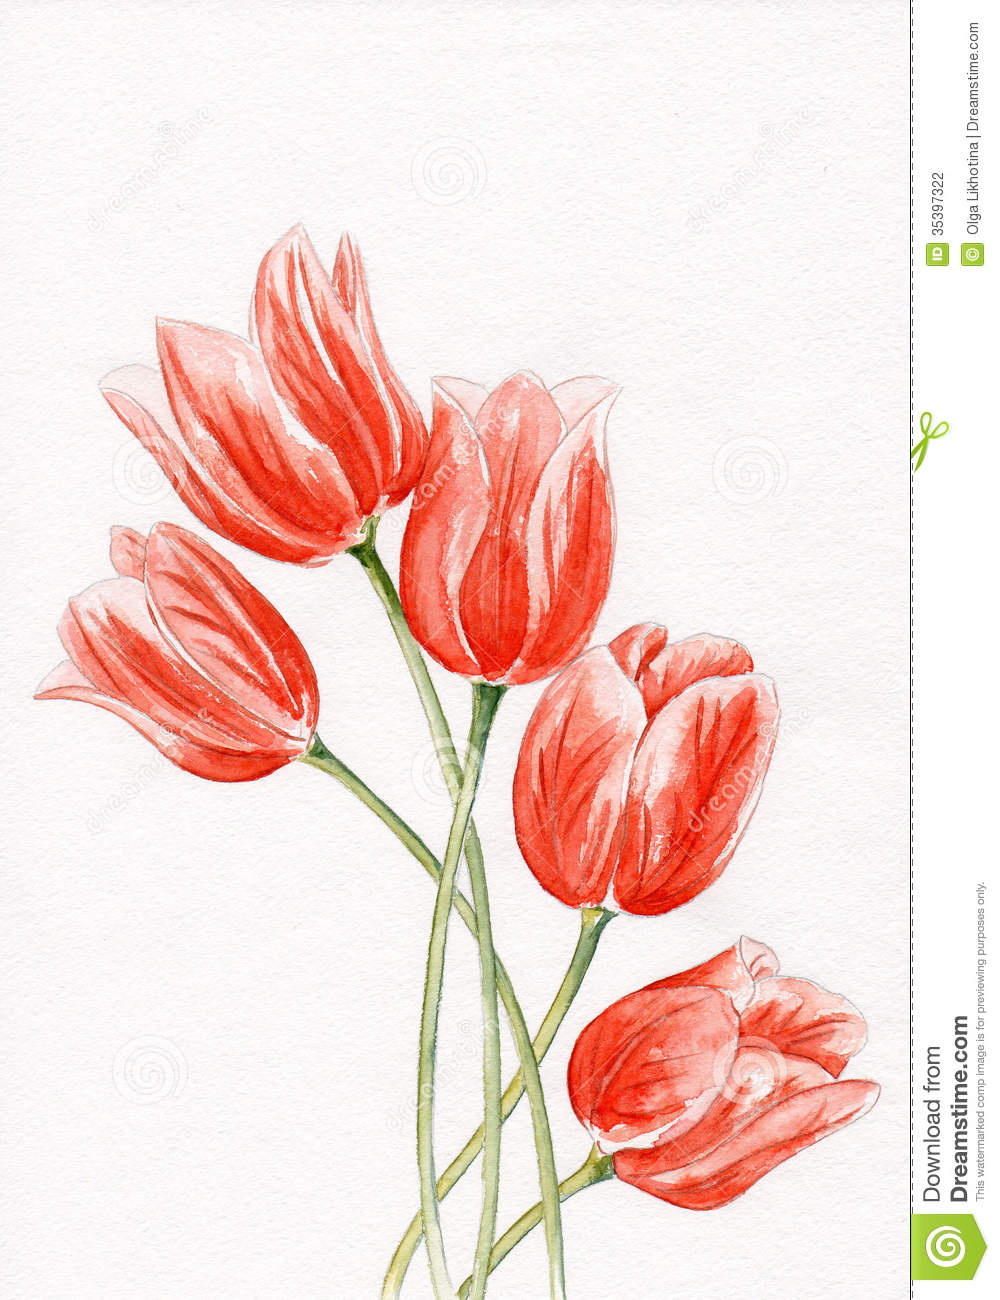 Beautiful pink flowers in the garden stock photography image - Watercolor Tulips Stock Photography Image 35397322